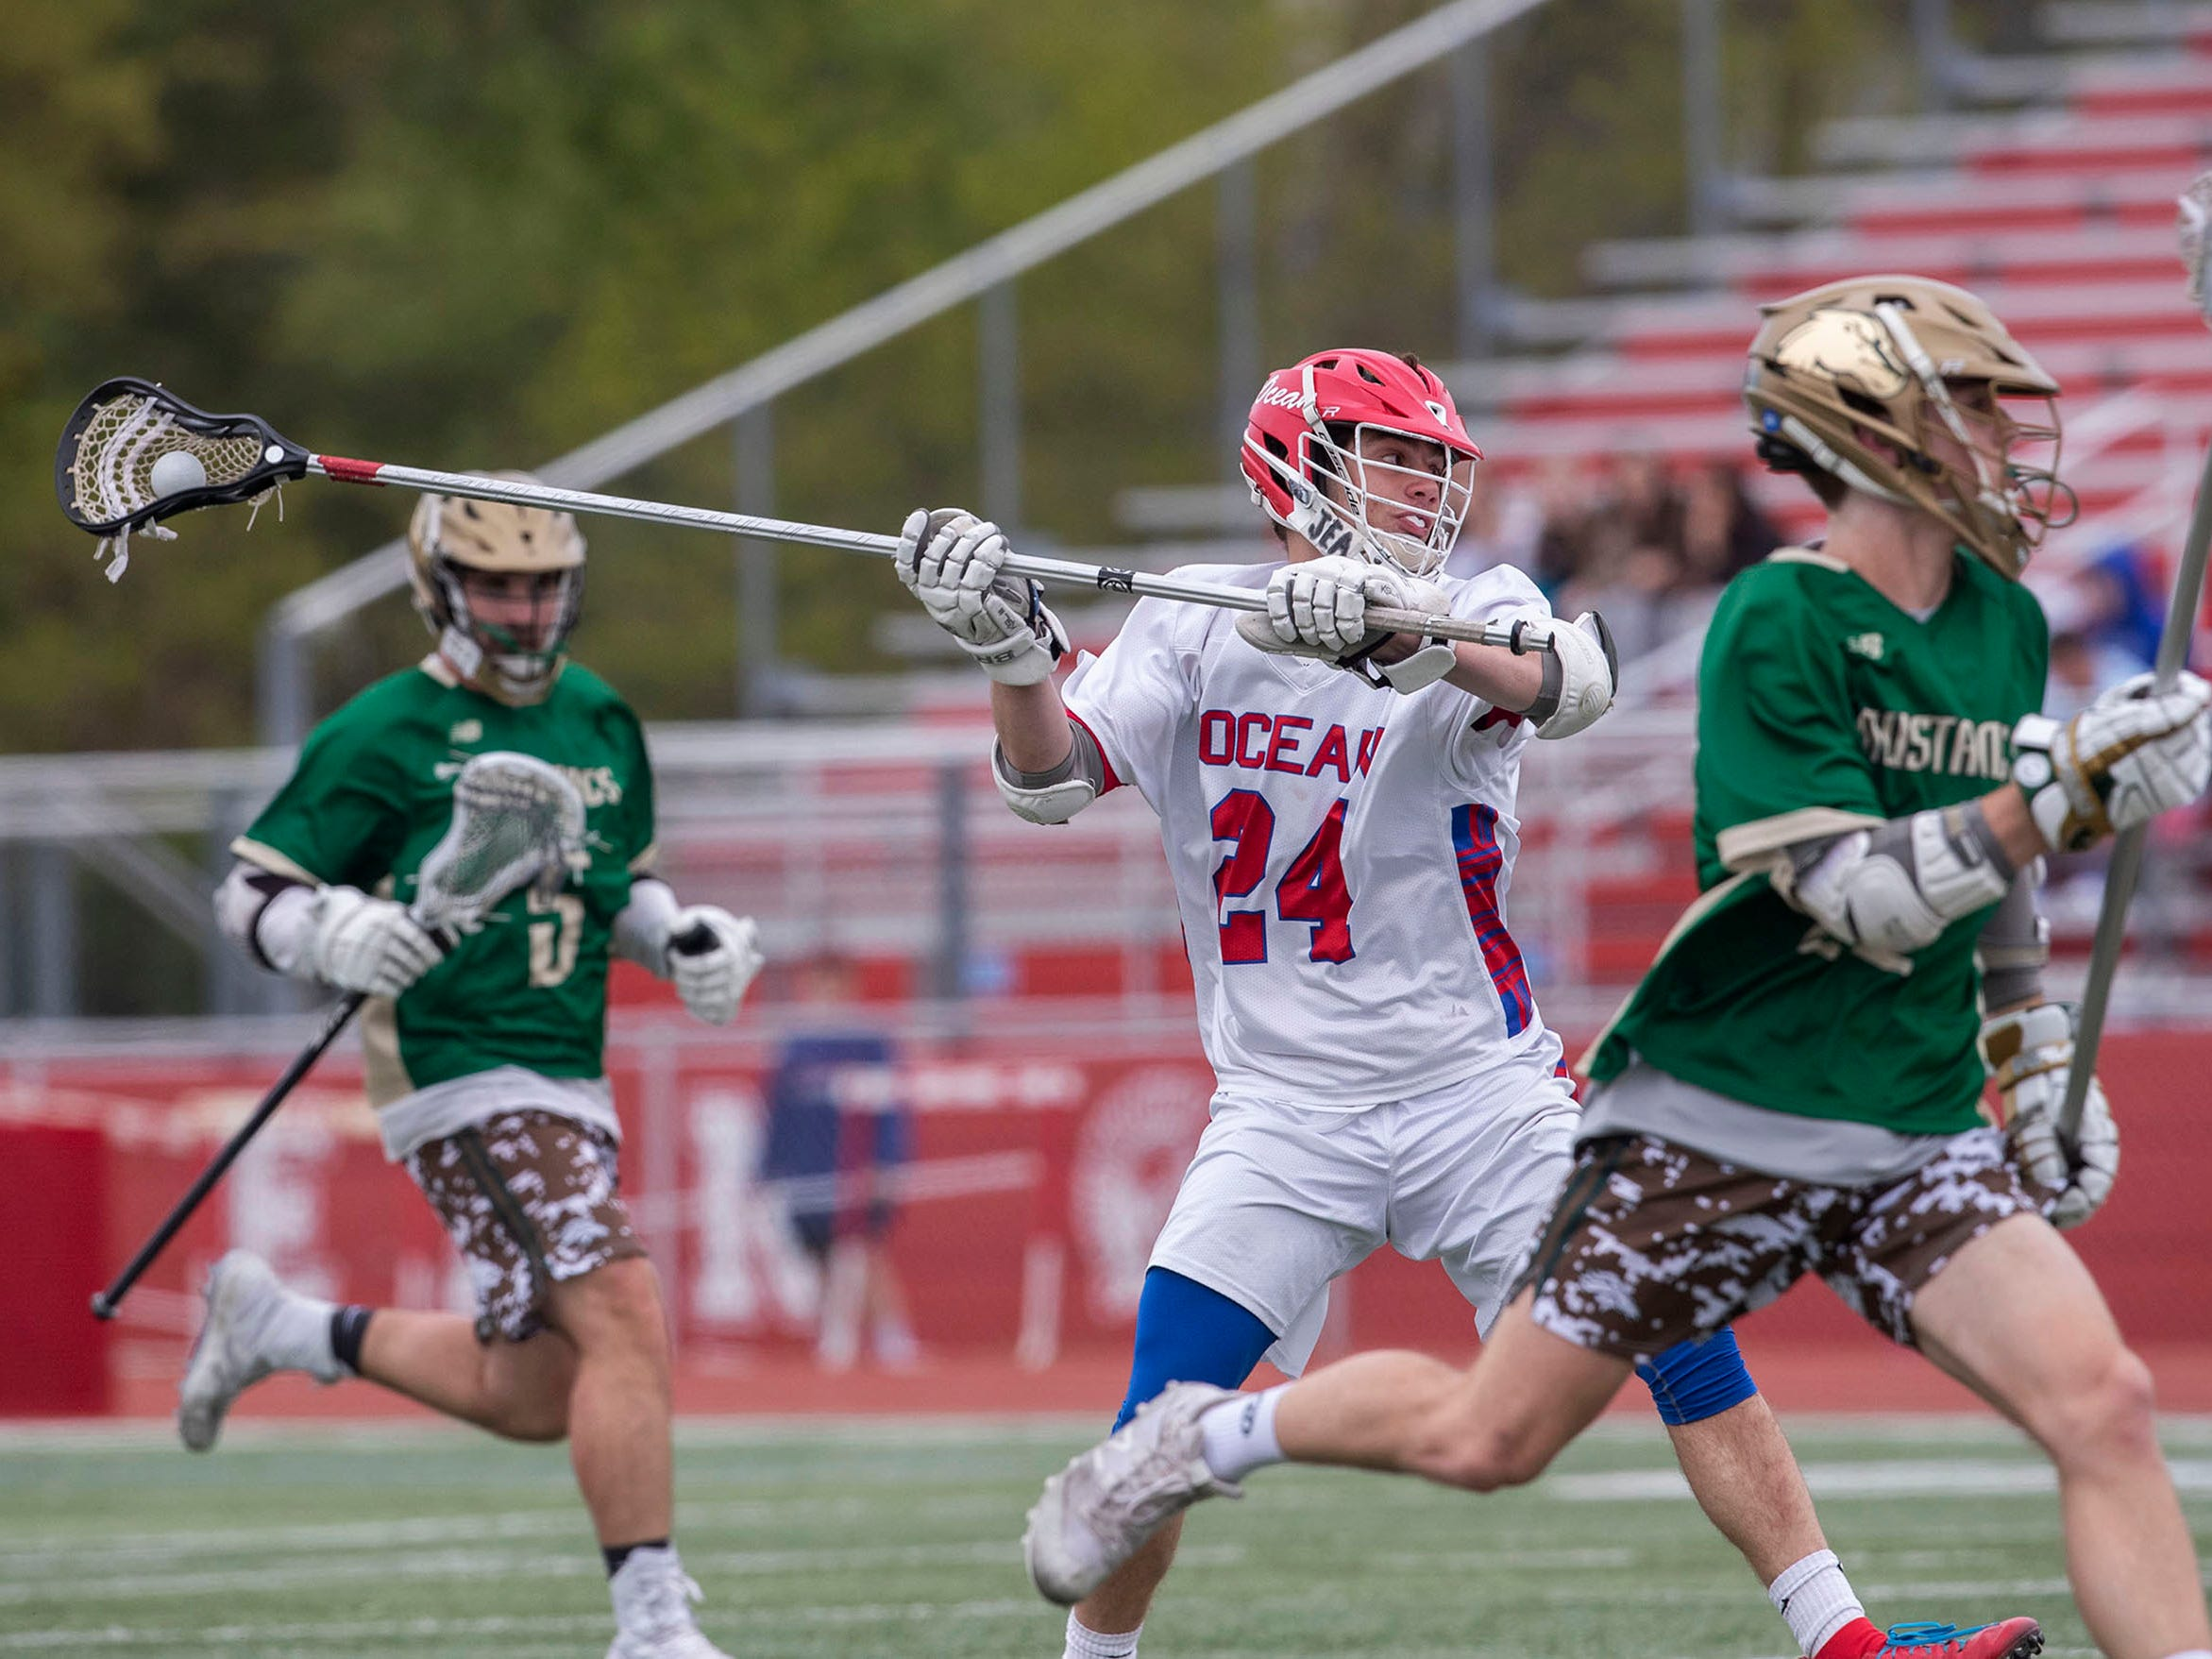 Ocean's Mike Kircher puts in a shot at the start of the second period during Brick Memorial Boys Lacrosse vs Ocean High School in Ocean Township NJ, on May 3, 2019.